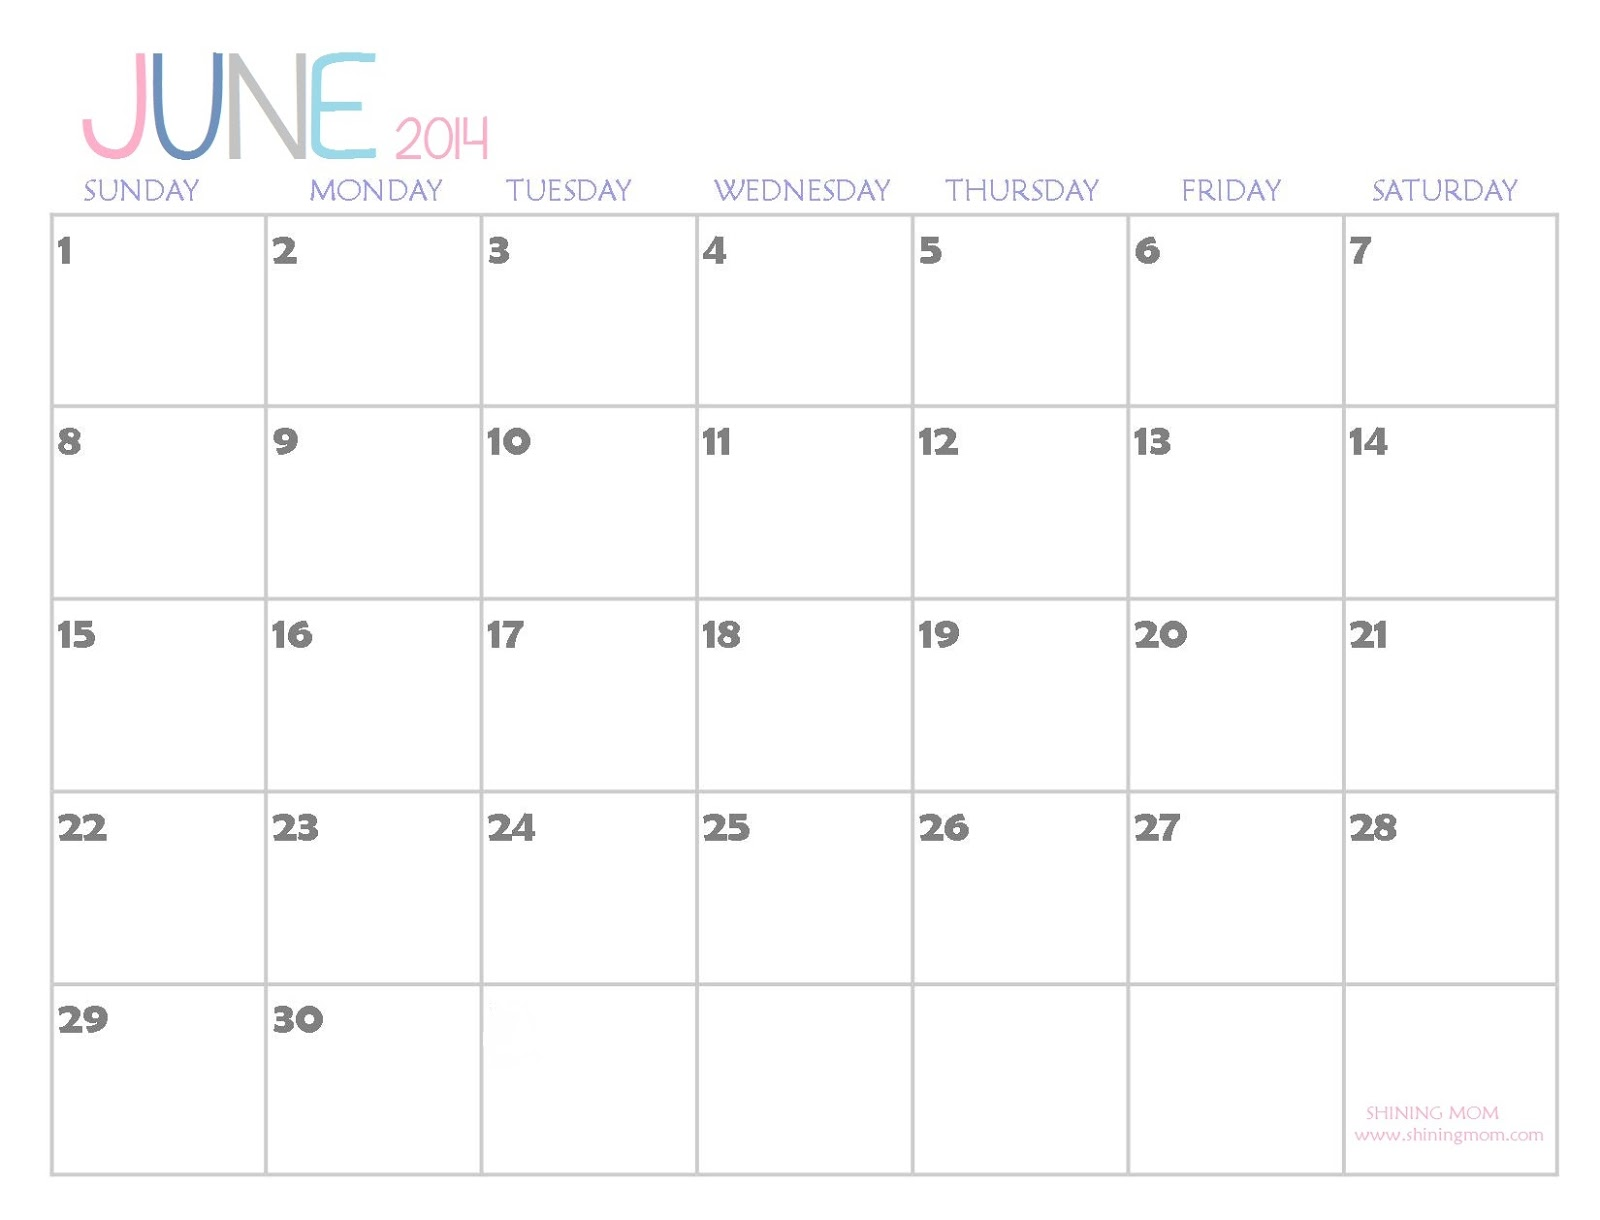 The Free Printable 2014 Calendar By Shining Mom Is Here